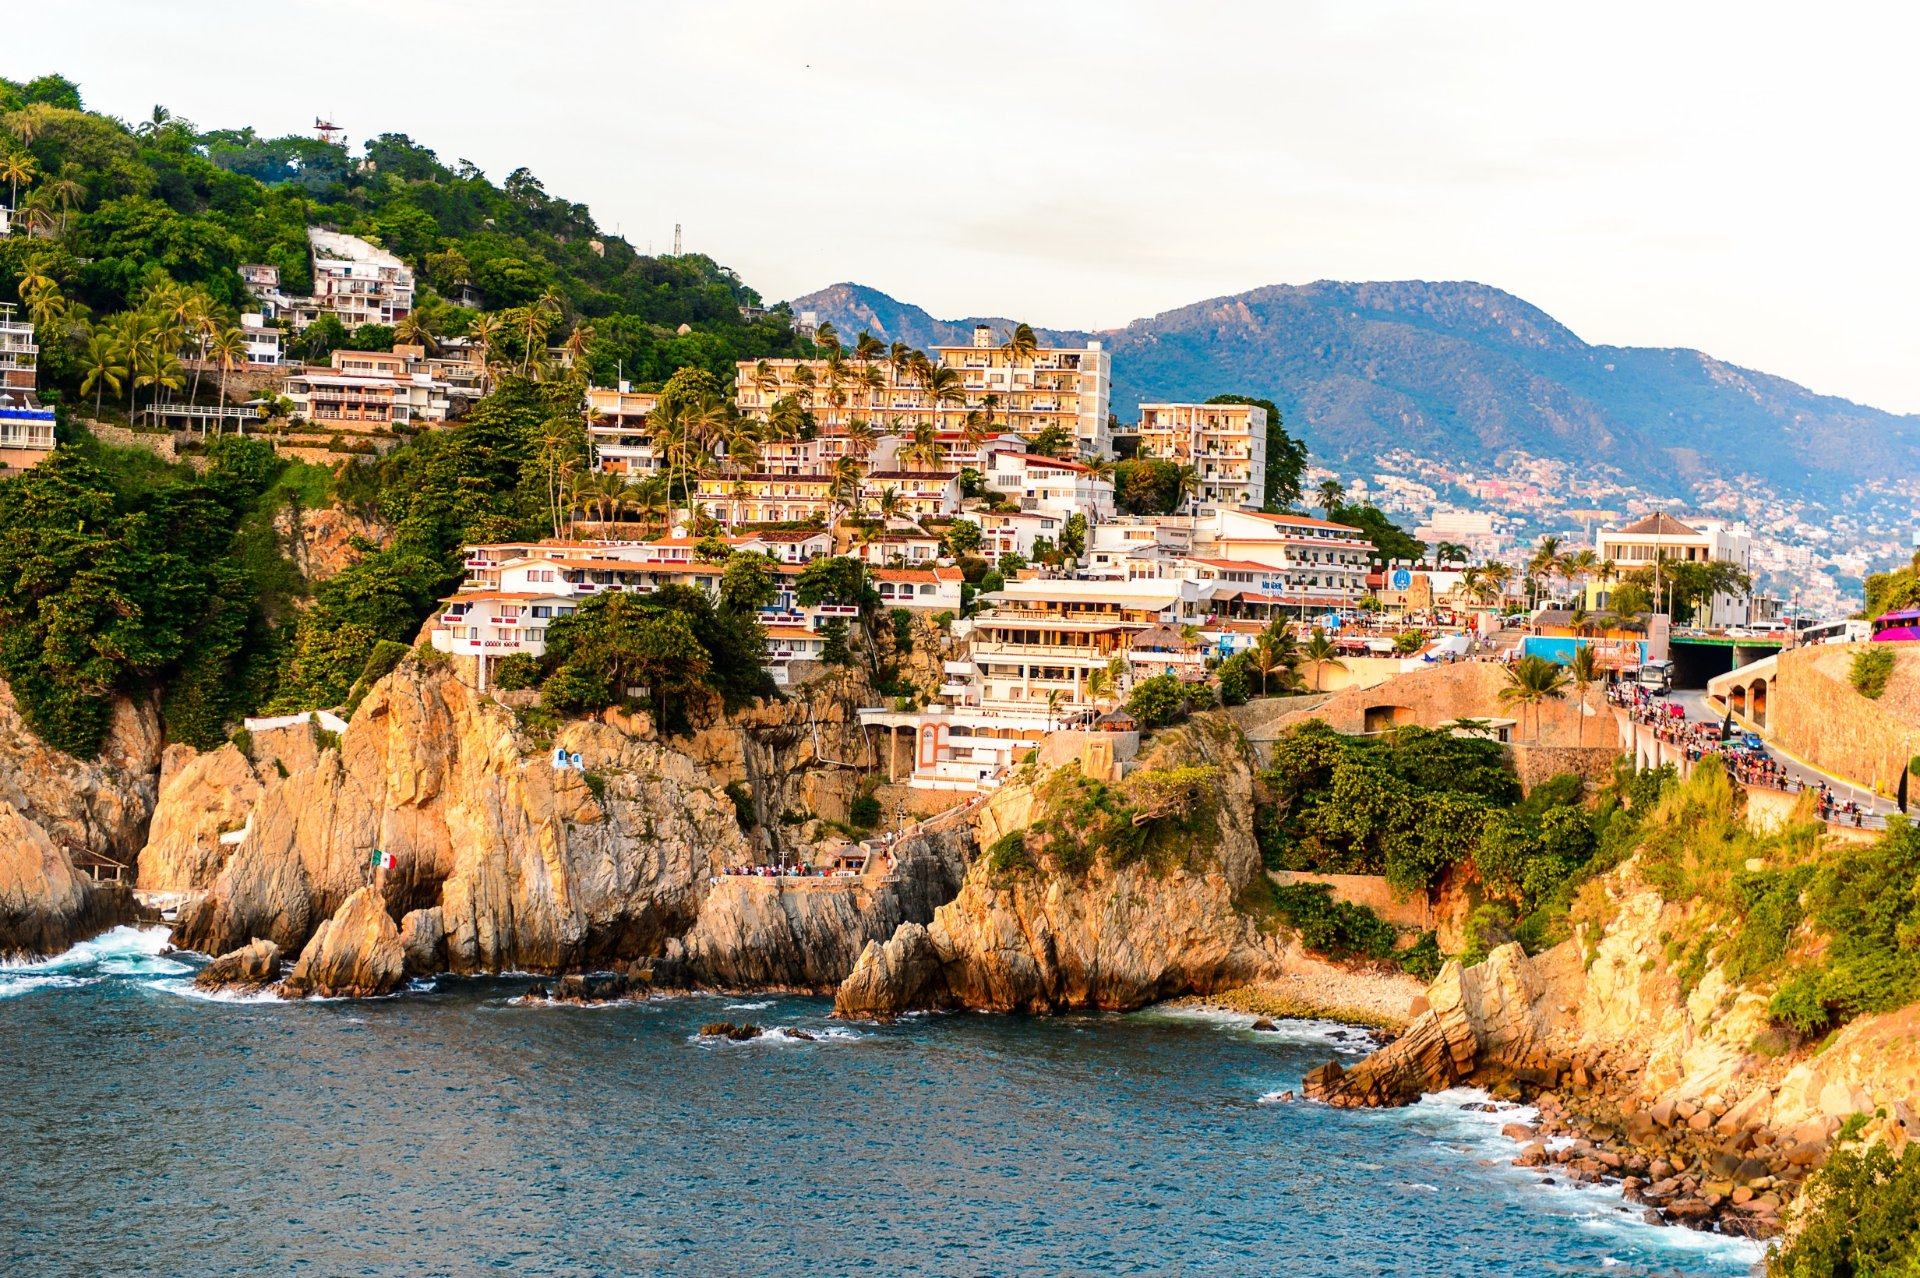 Charter Flights to Acapulco